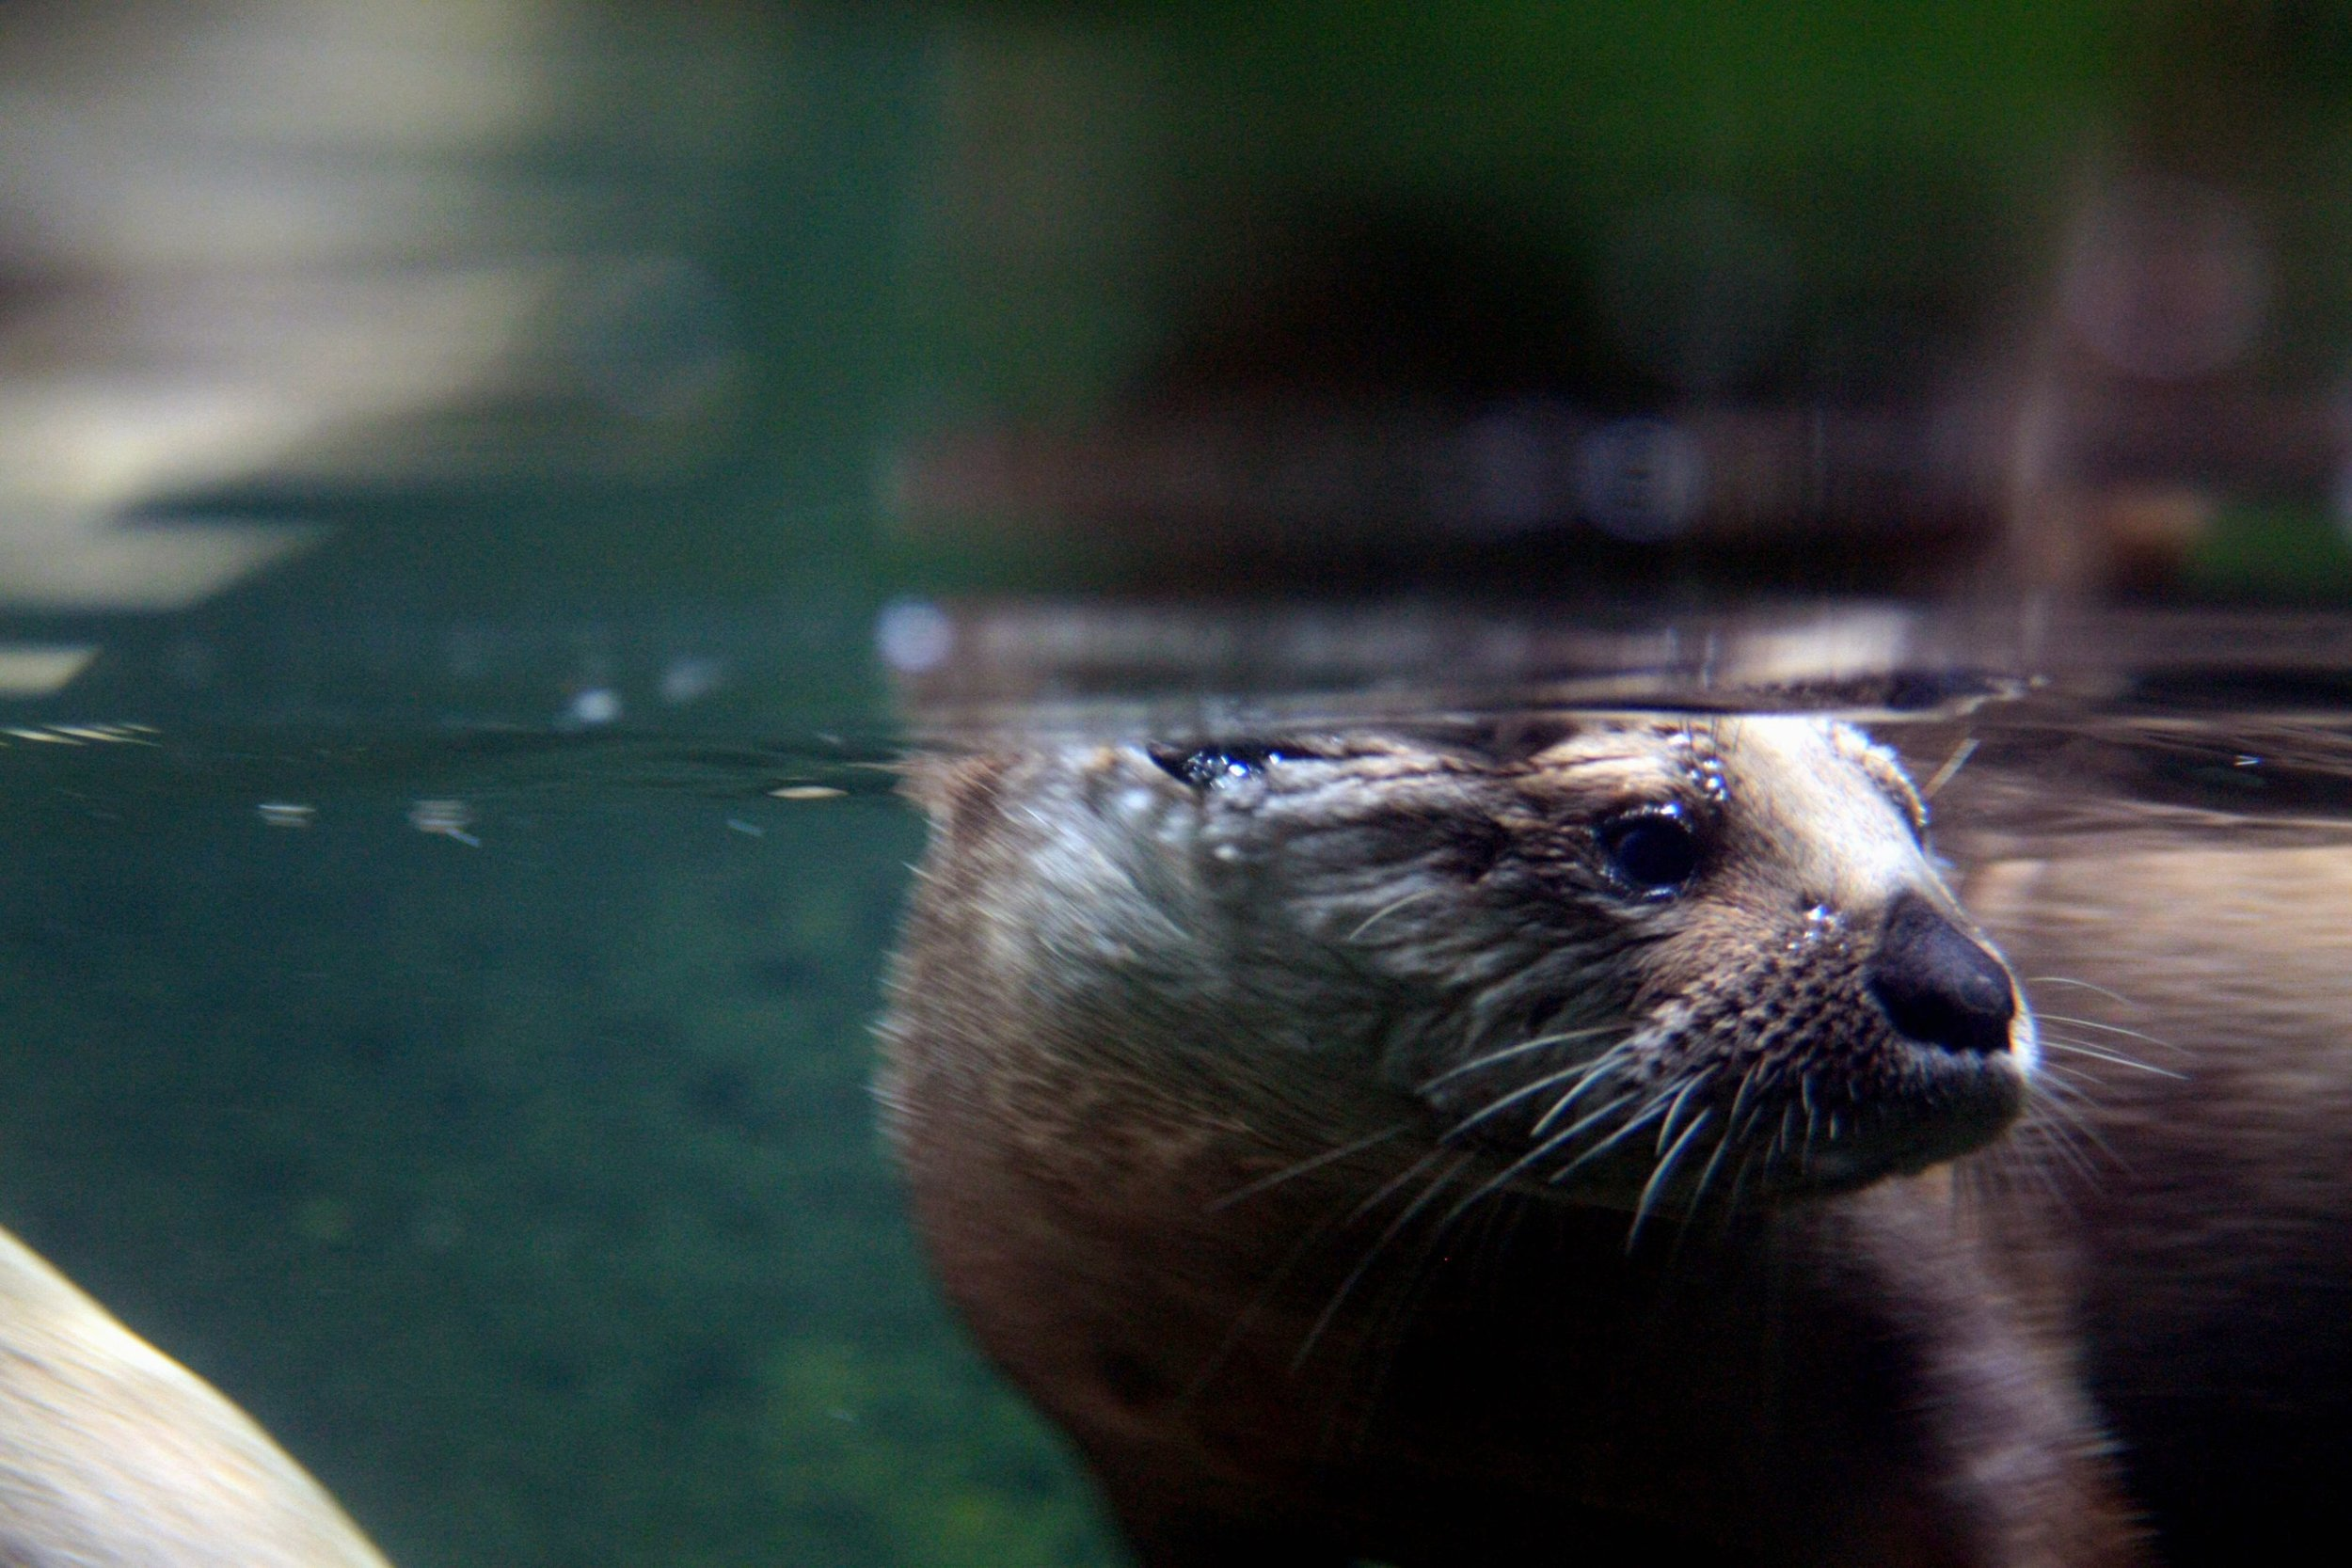 A RIVER OTTER, ThE Species of Otter tHat is Native to the Potomac River. PHoto Courtesy of  GollyGFORCE VIA FLICKR .